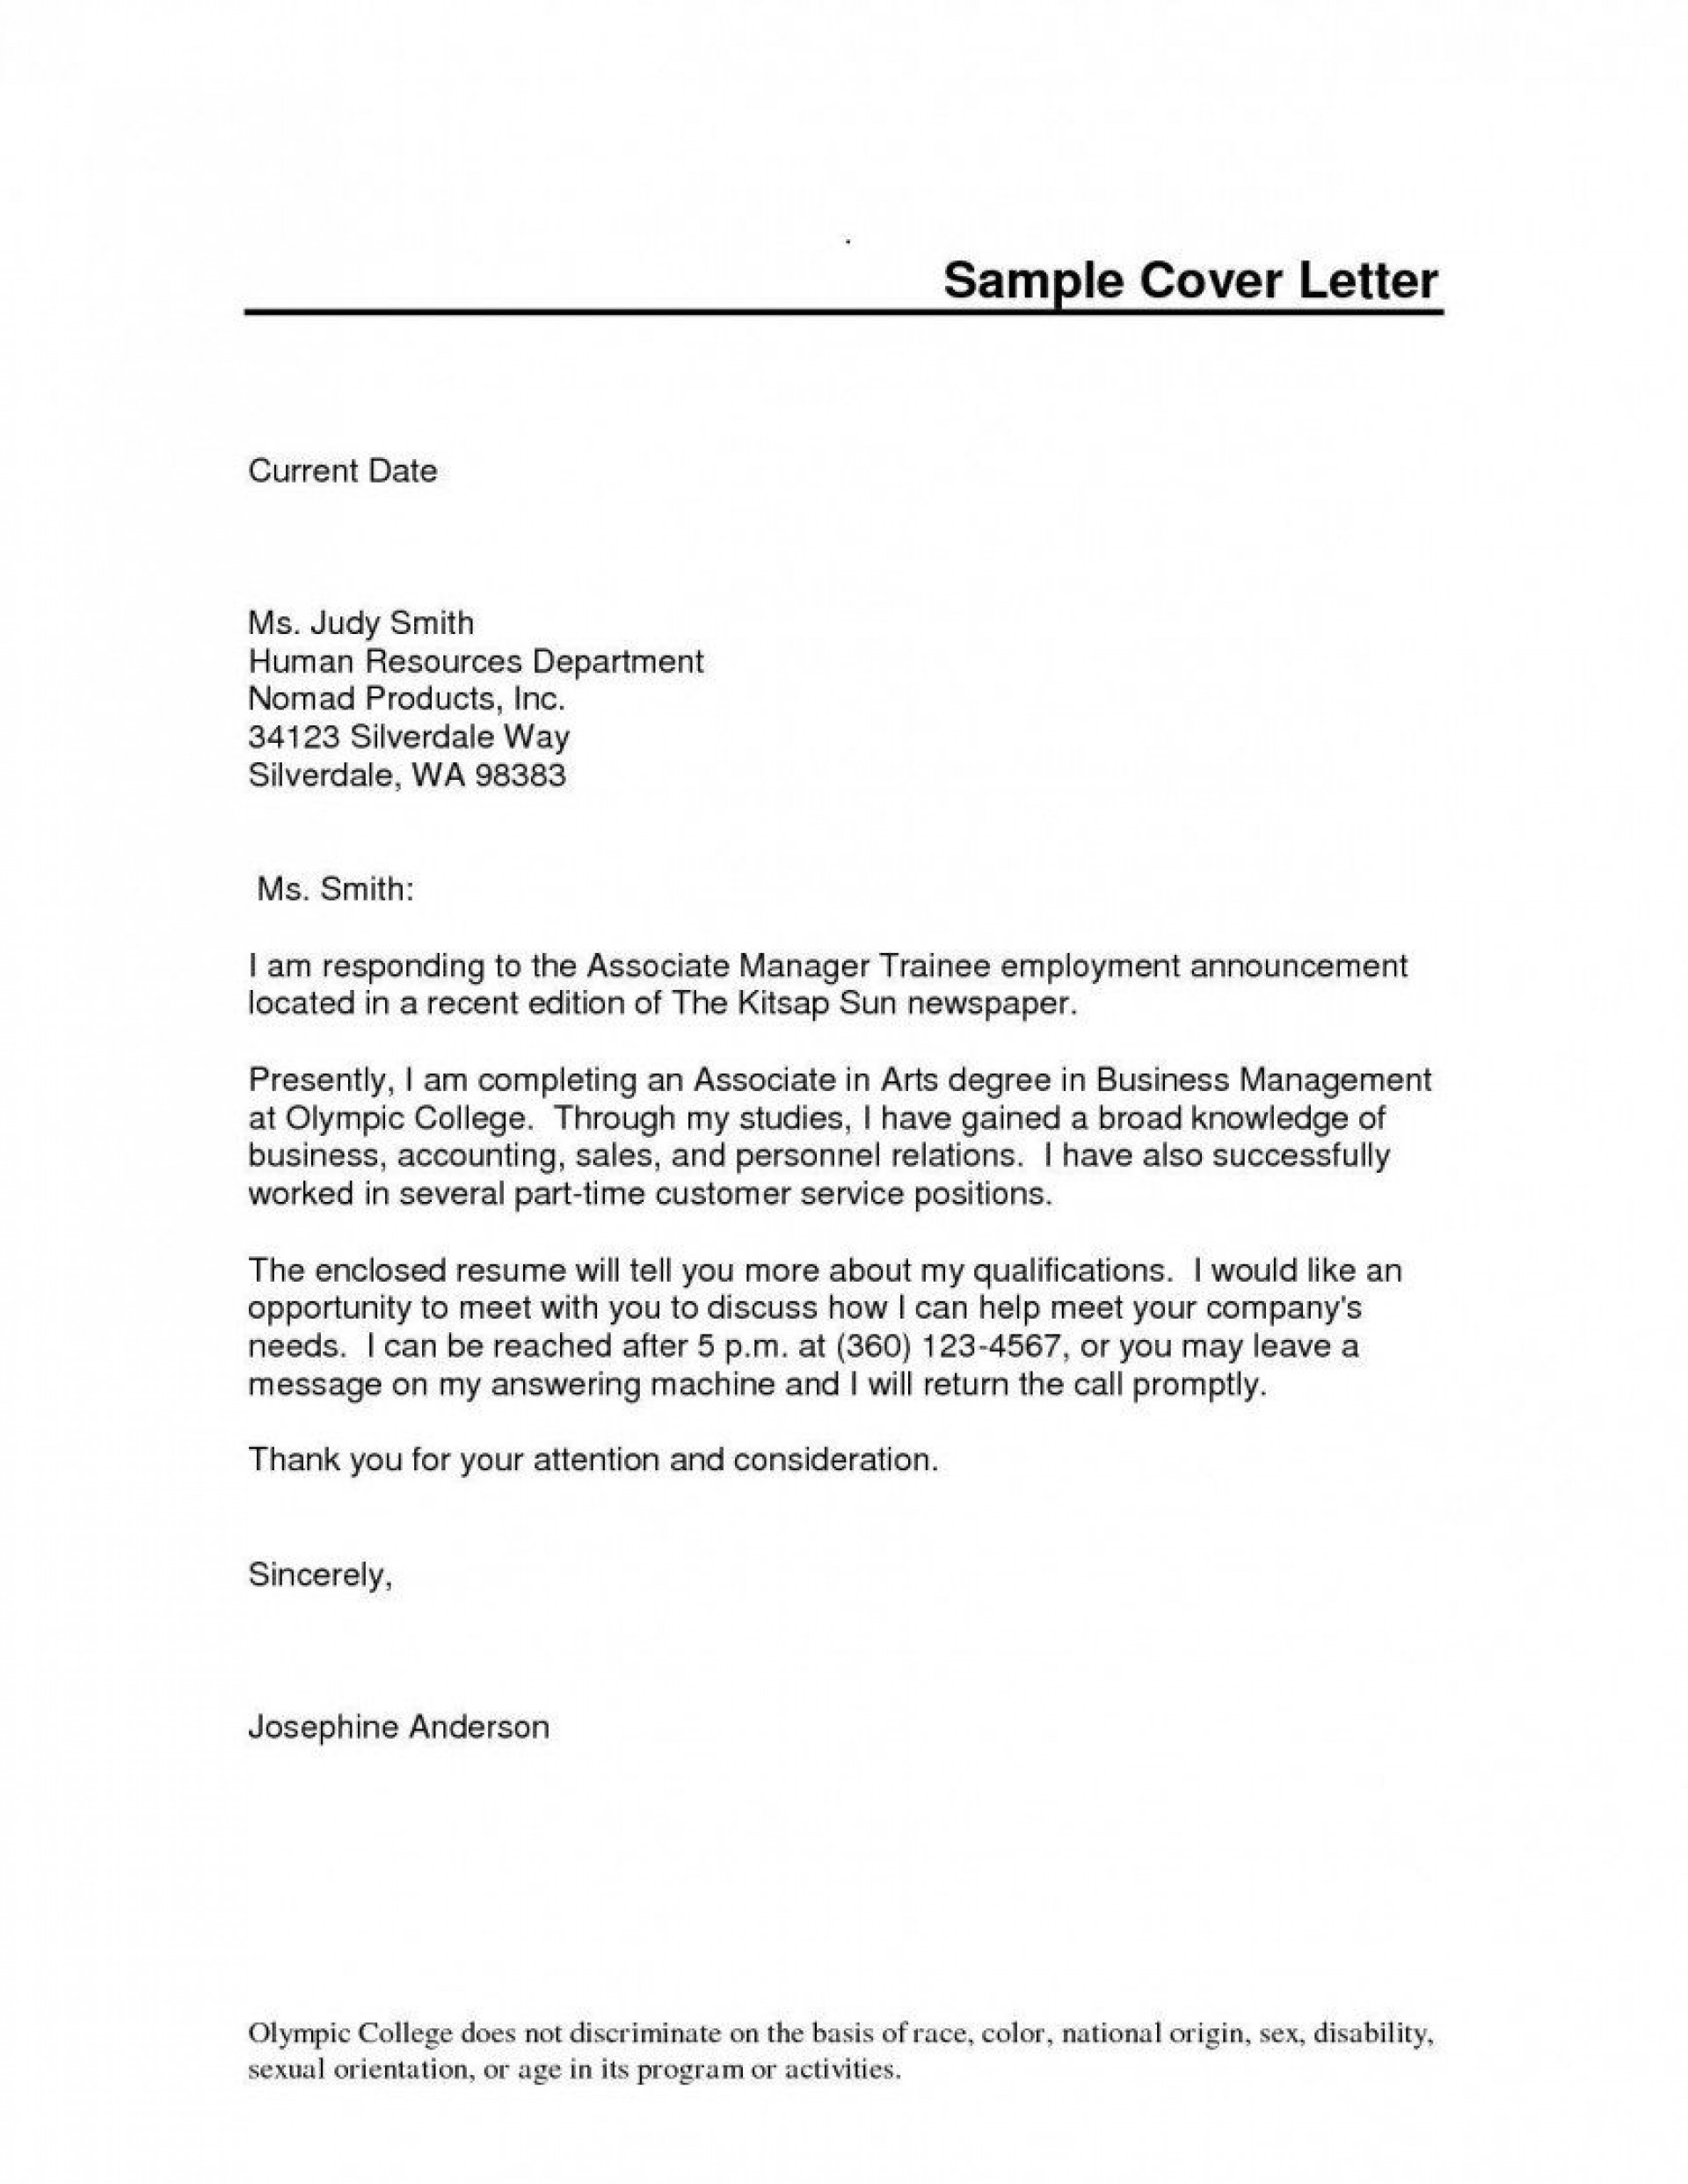 006 Sensational Microsoft Cover Letter Template Highest Clarity  Templates Free Resume Word Download 2010 Page1920